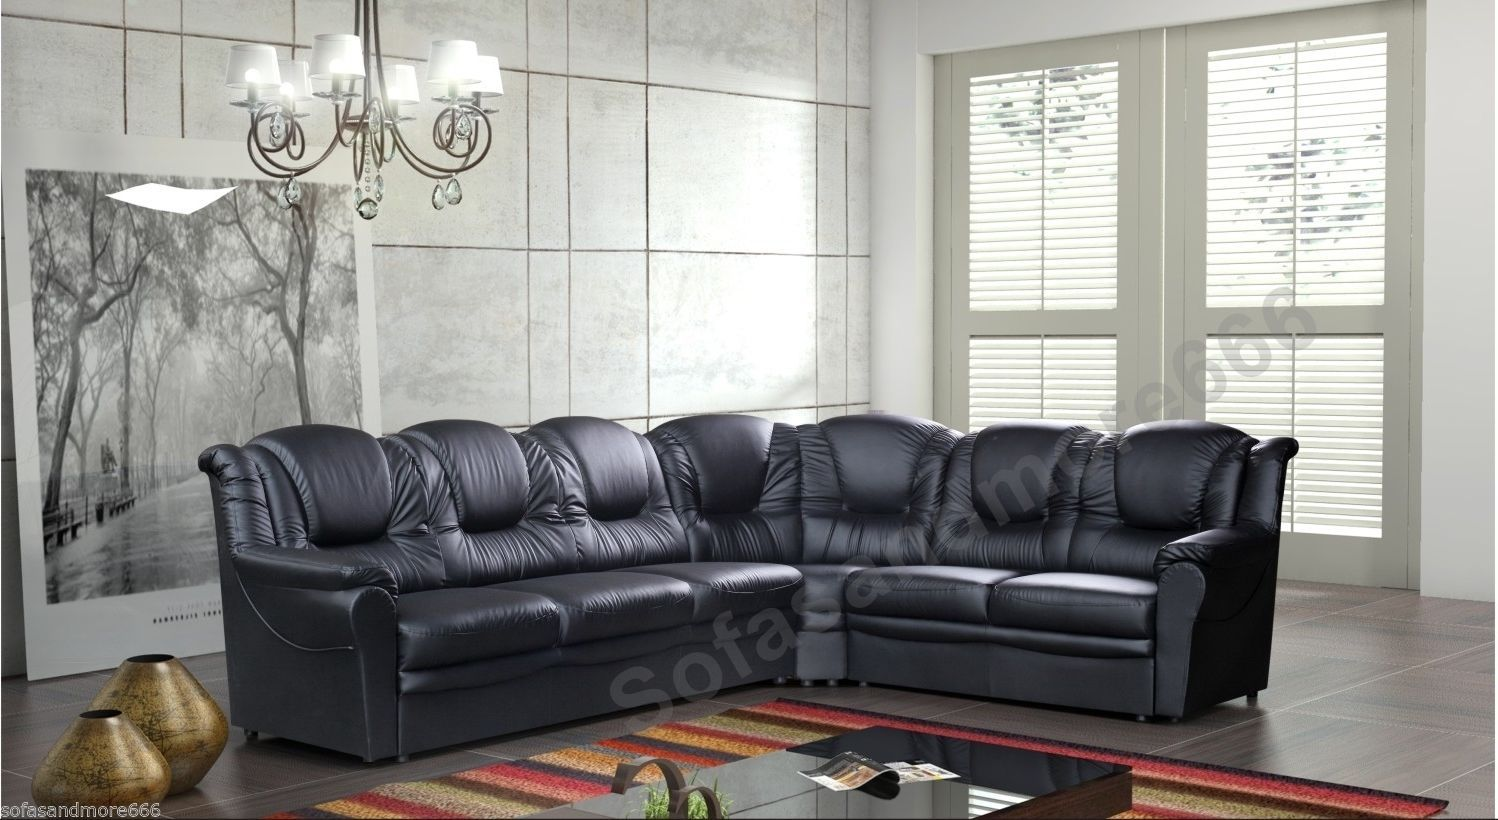 Leather Corner Sofa Set: Pin By Sofas AndMore On Home Furniture